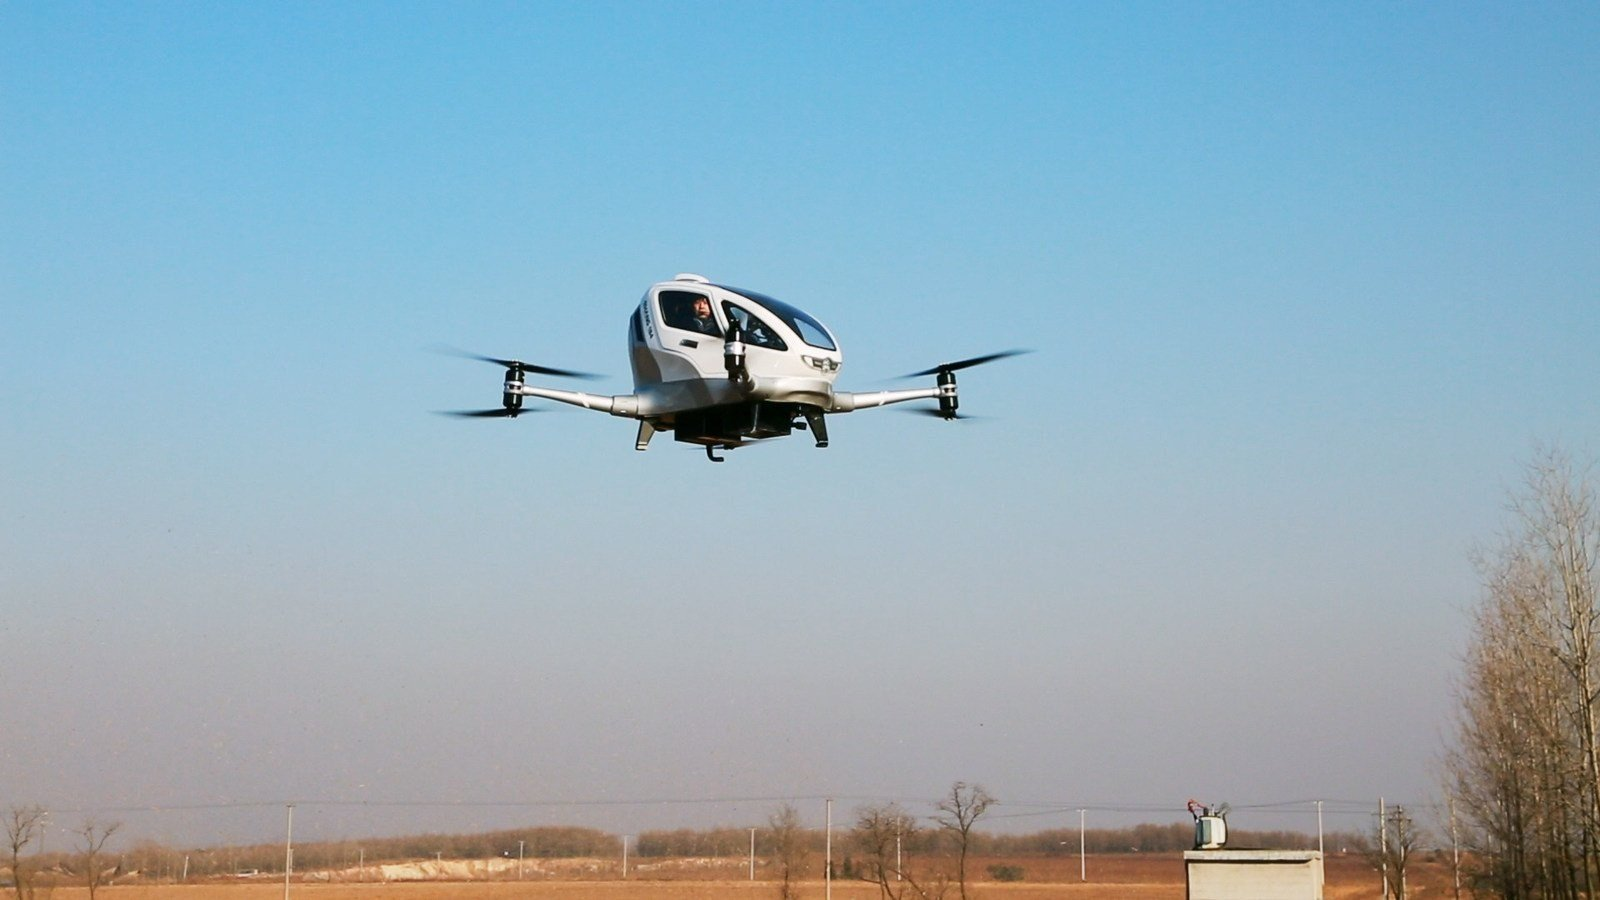 EHANG CEO Hu Huazhi conducts a manned test flight on the EHANG 184 drone.